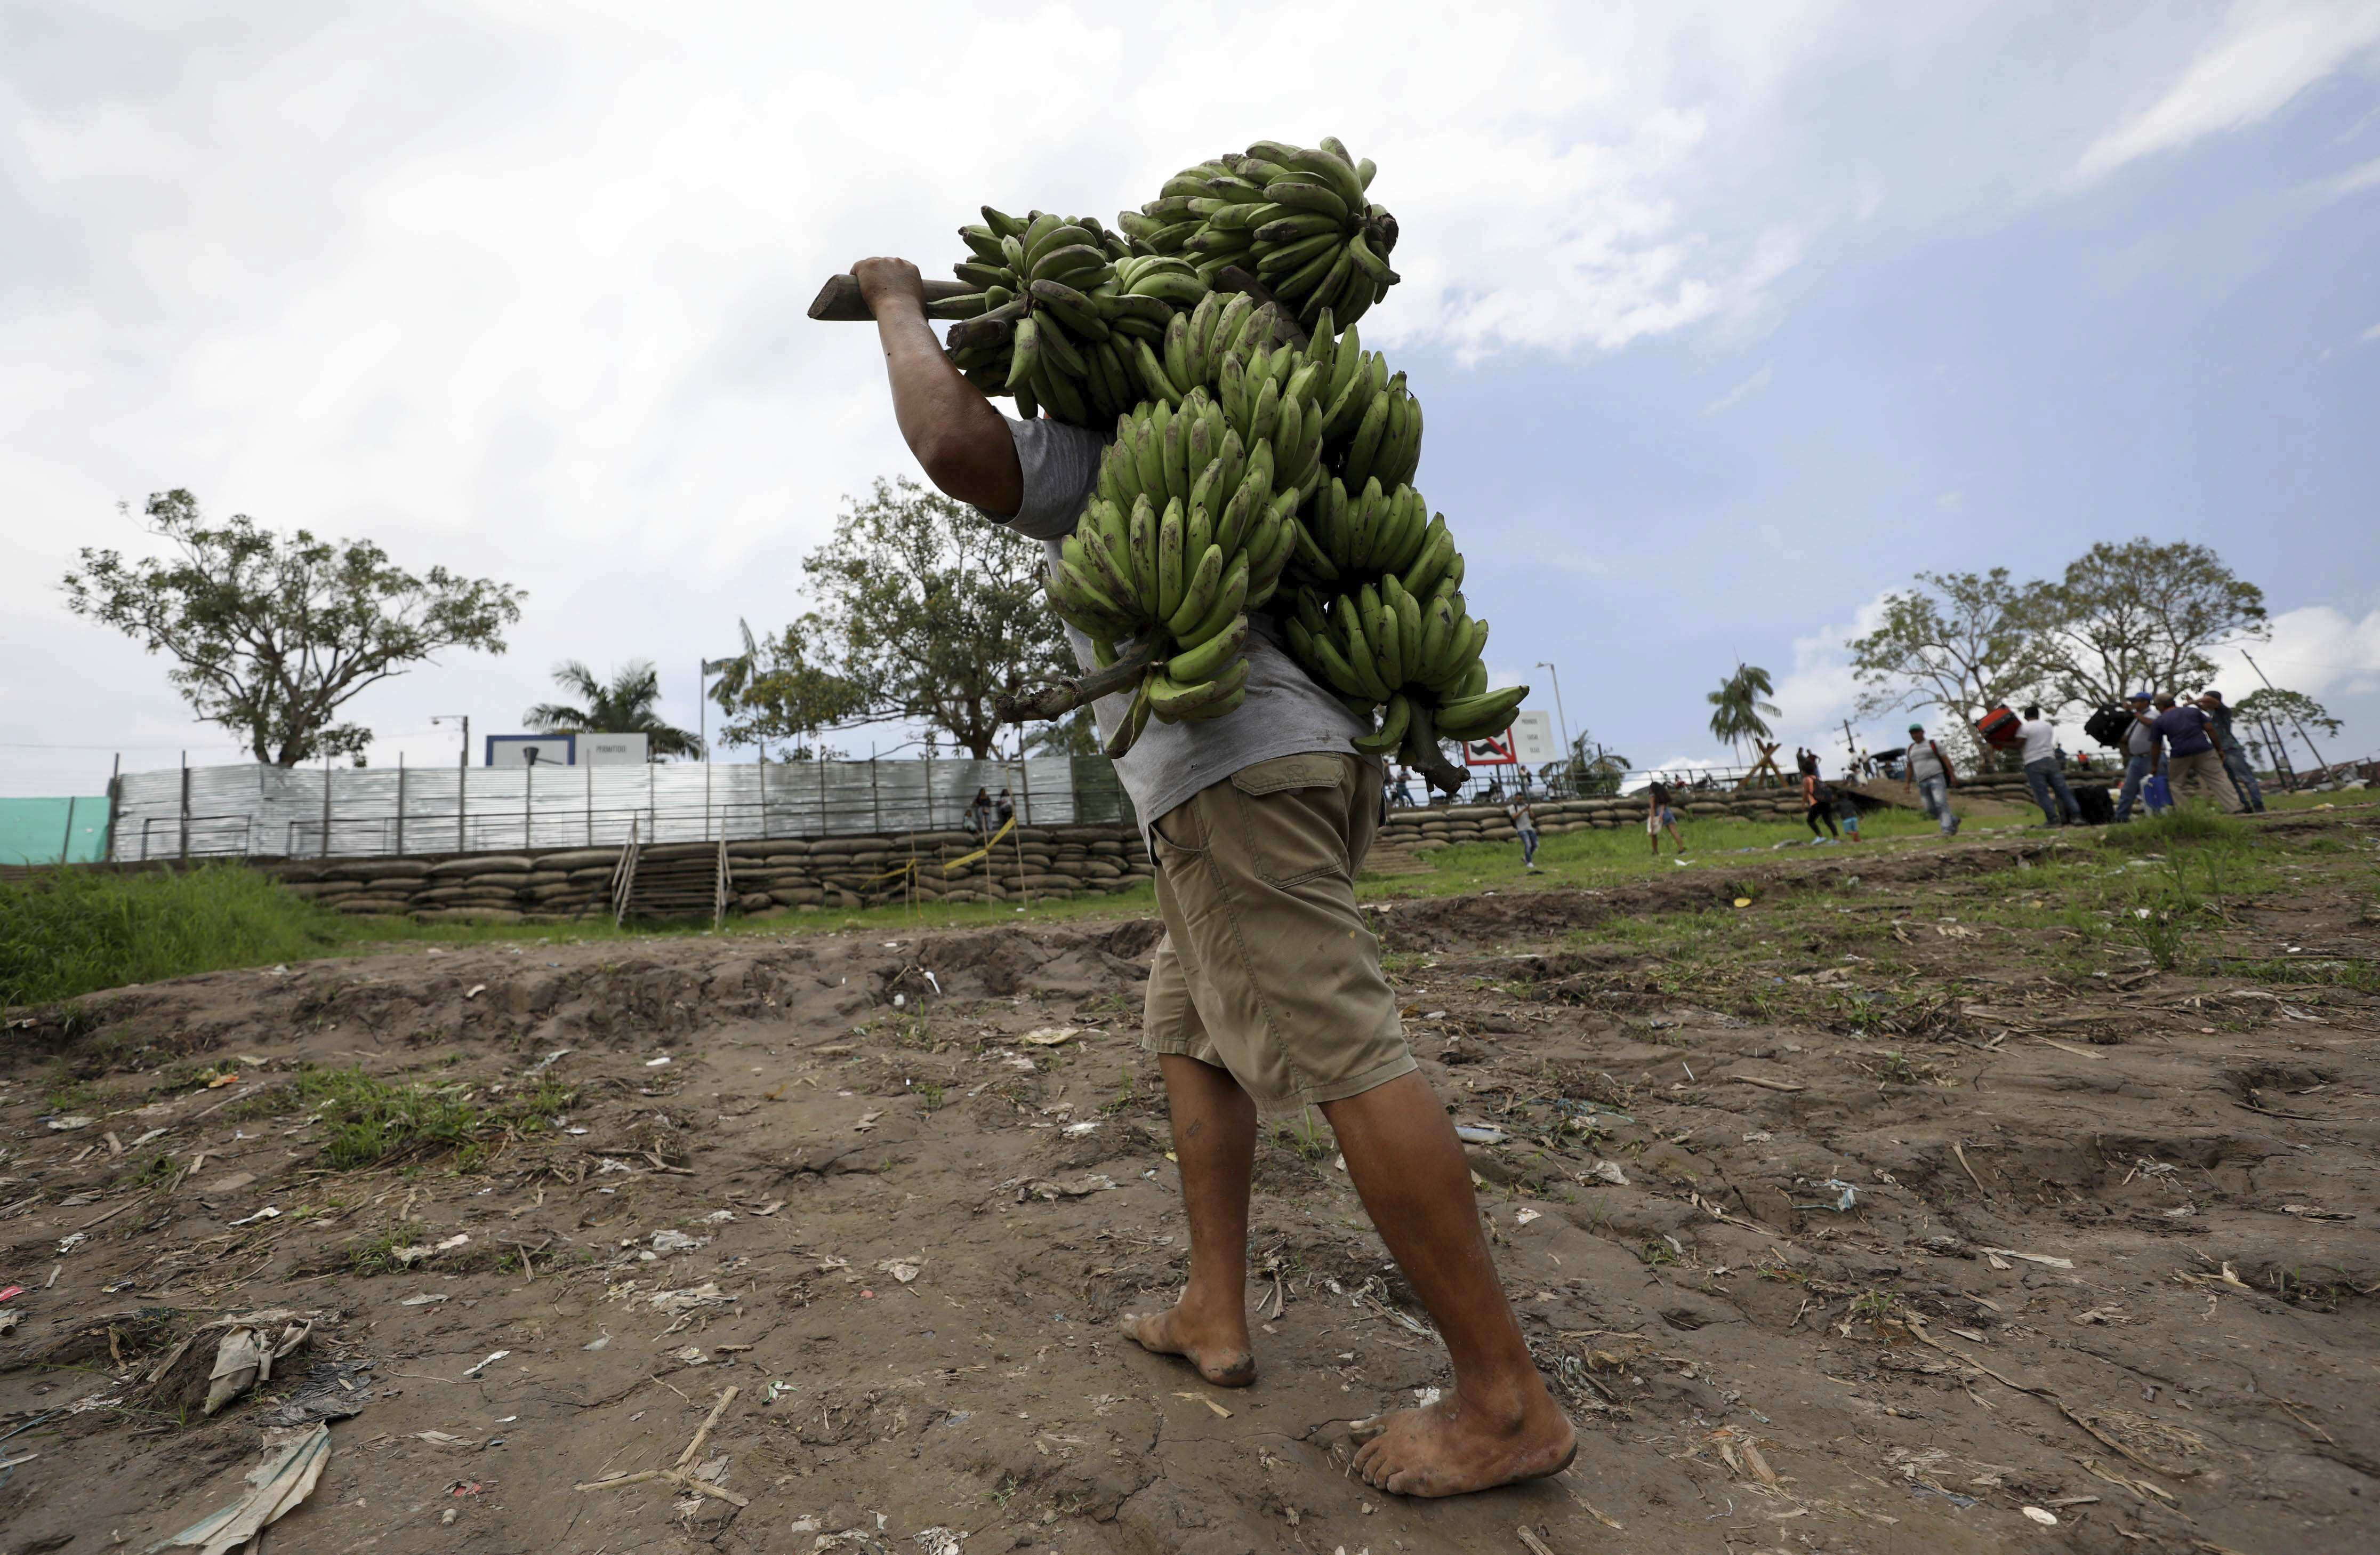 Bananas in Colombia